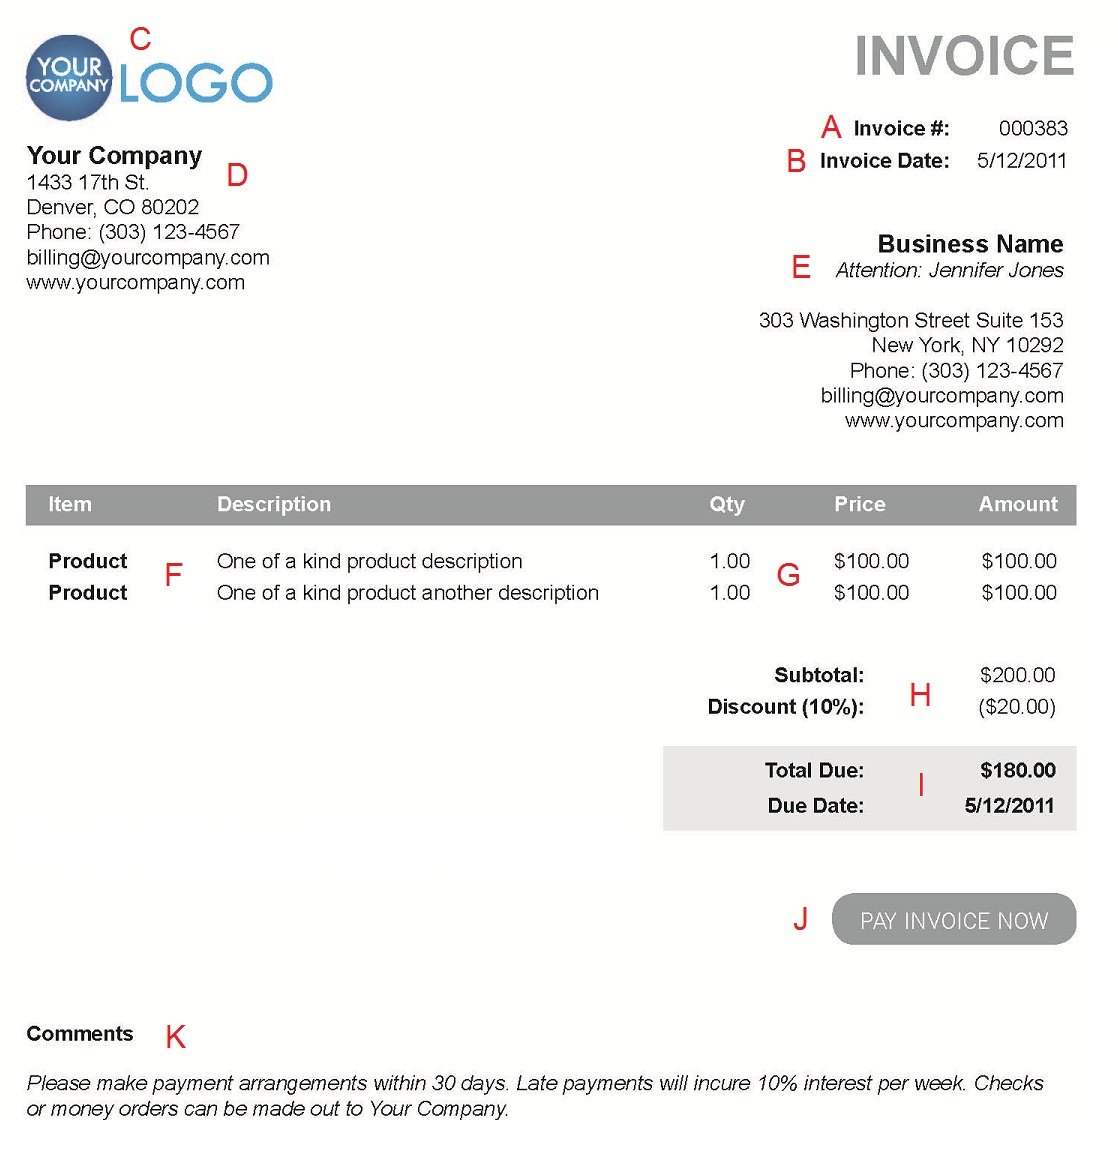 Theologygeekblogus  Wonderful The  Different Sections Of An Electronic Payment Invoice With Heavenly A  With Cute Definition Of Sales Invoice Also Psd Invoice Template In Addition Inventory Invoice And Samples Of Invoices Format As Well As Invoice Recognition Additionally Sales Invoice Terms And Conditions From Paysimplecom With Theologygeekblogus  Heavenly The  Different Sections Of An Electronic Payment Invoice With Cute A  And Wonderful Definition Of Sales Invoice Also Psd Invoice Template In Addition Inventory Invoice From Paysimplecom